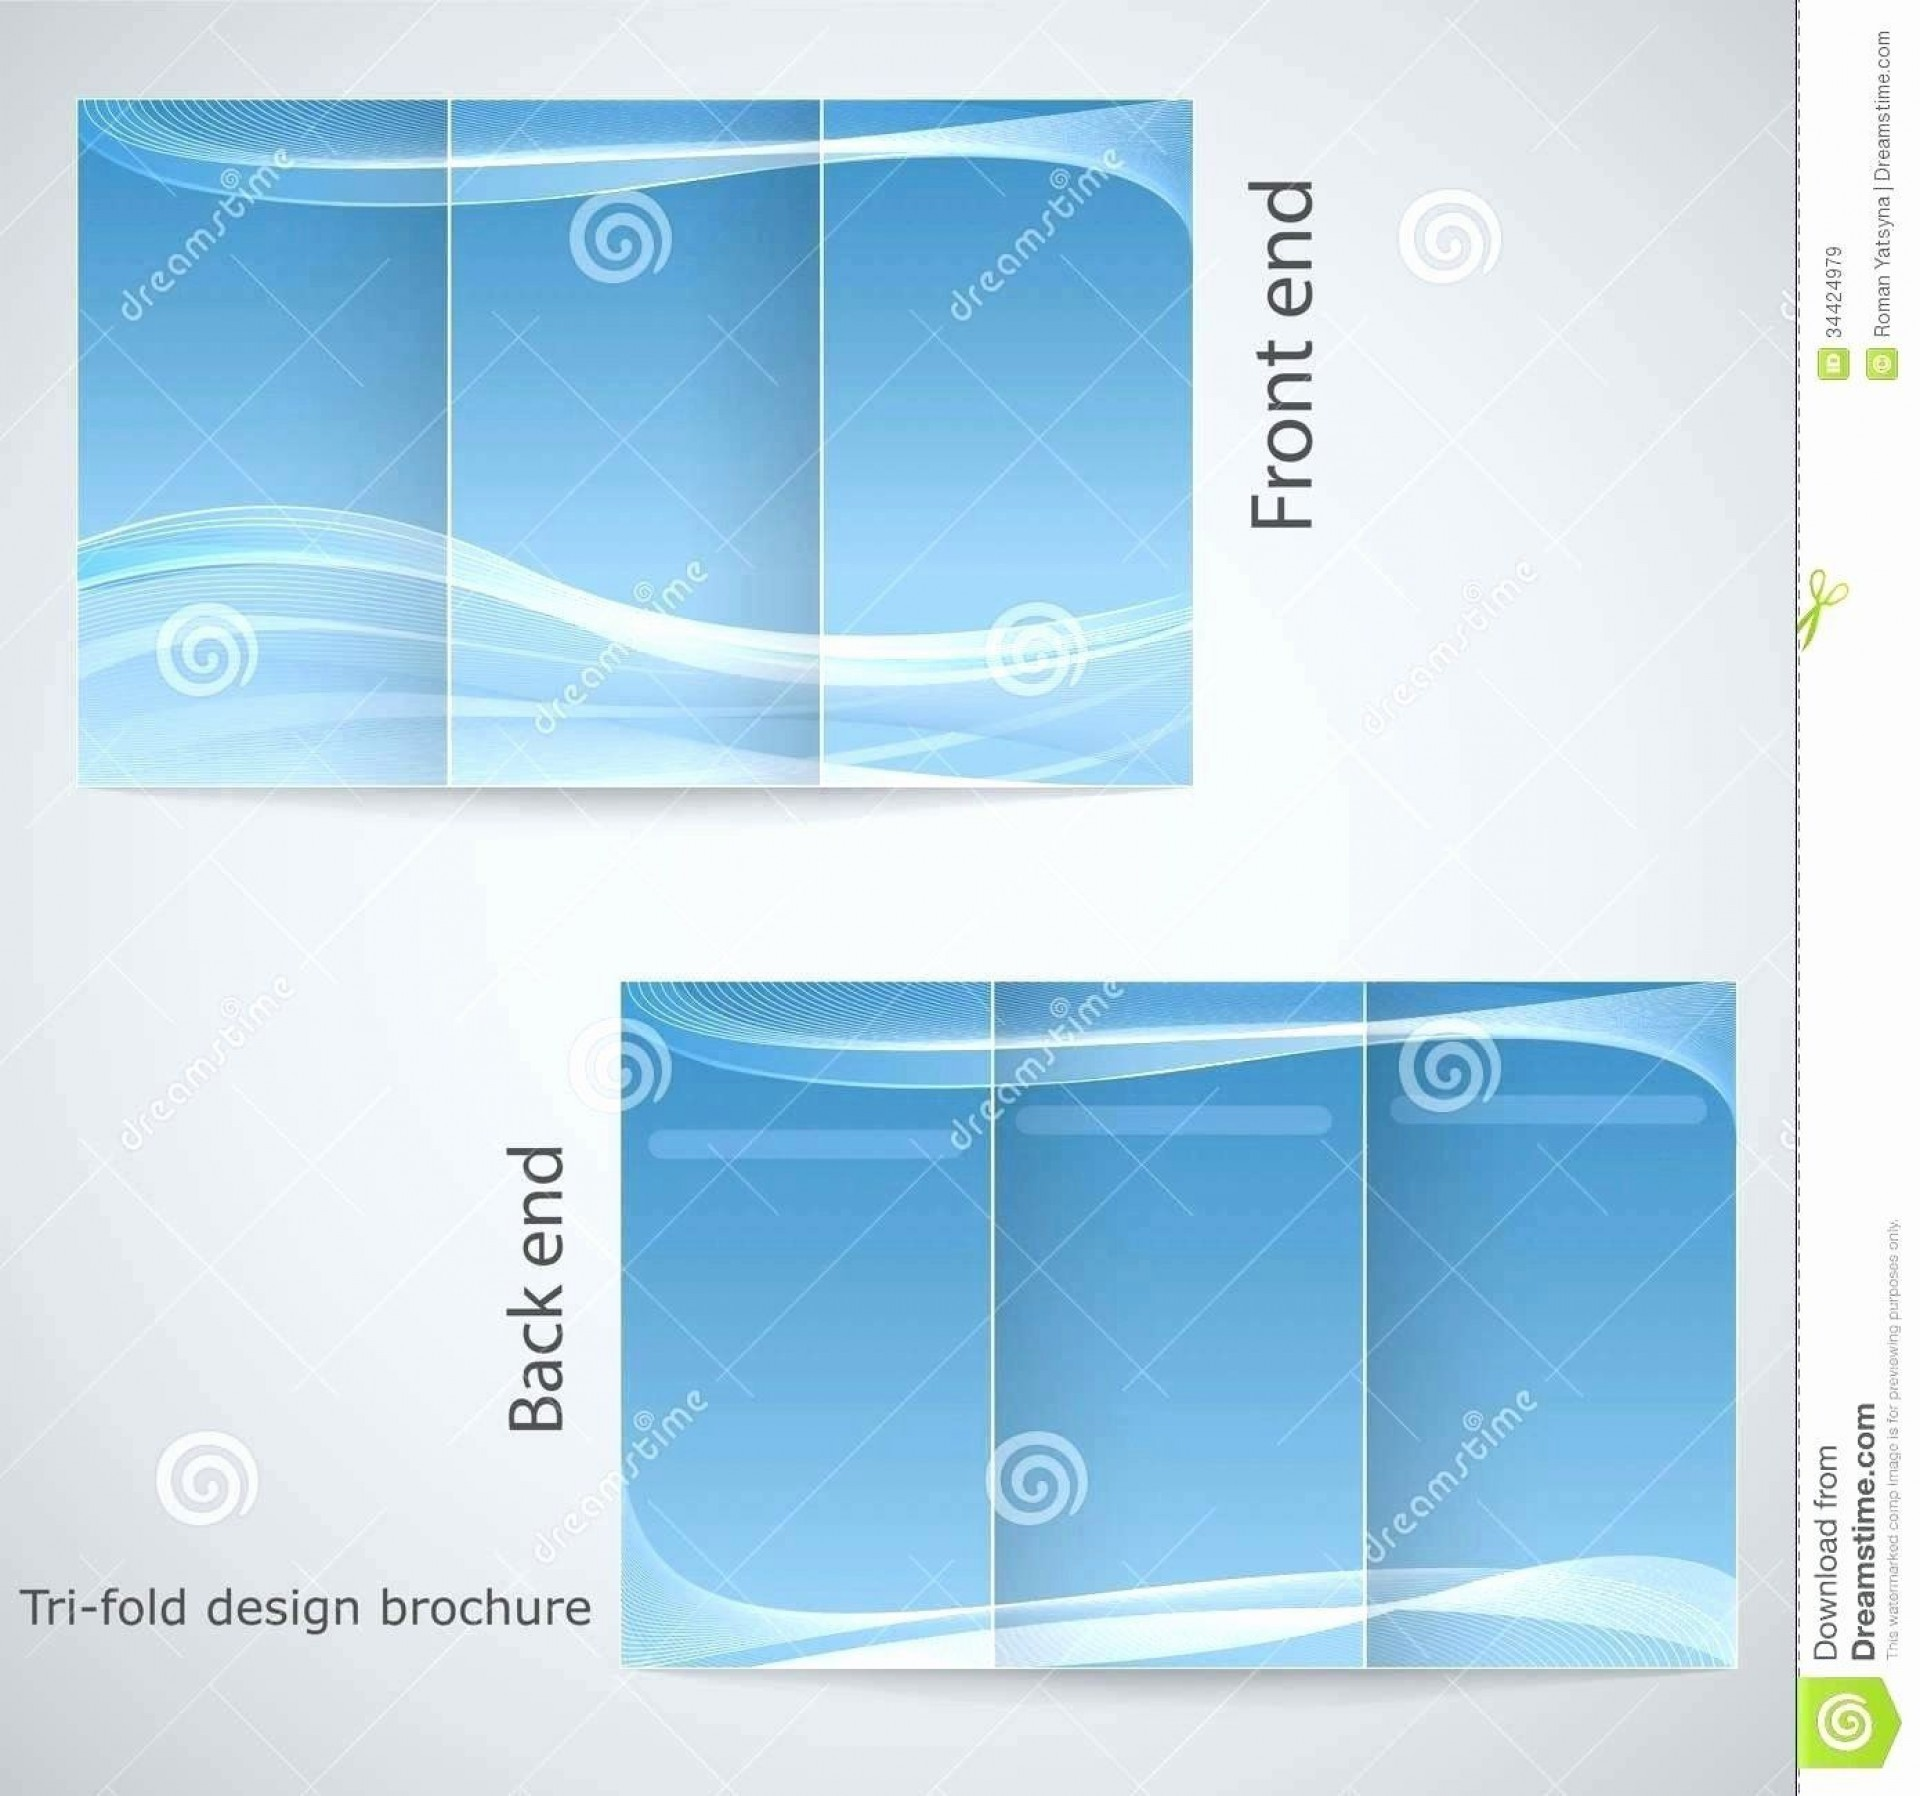 001 Marvelou M Word Tri Fold Brochure Template Highest Clarity  Microsoft Free Download1920